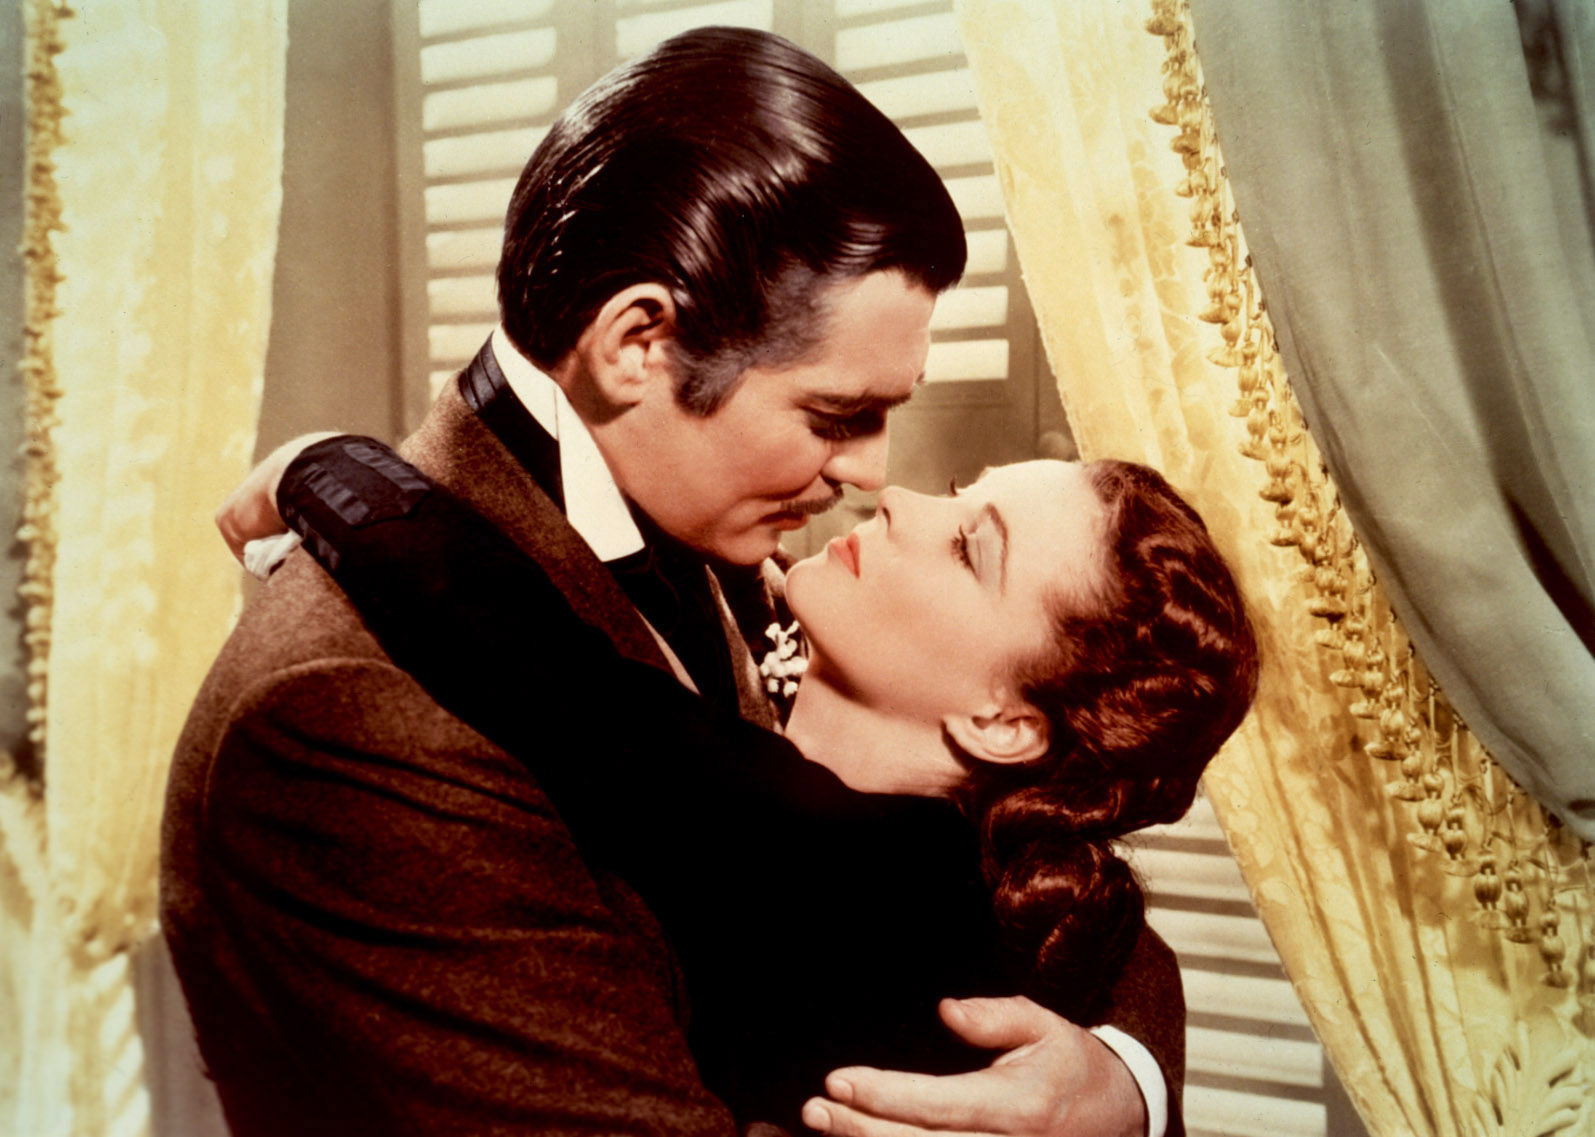 """Картинки по запросу Rhett Butler kisses Scarlett O'Hara in Gone With The Wind and says """"You need kissing badly"""""""